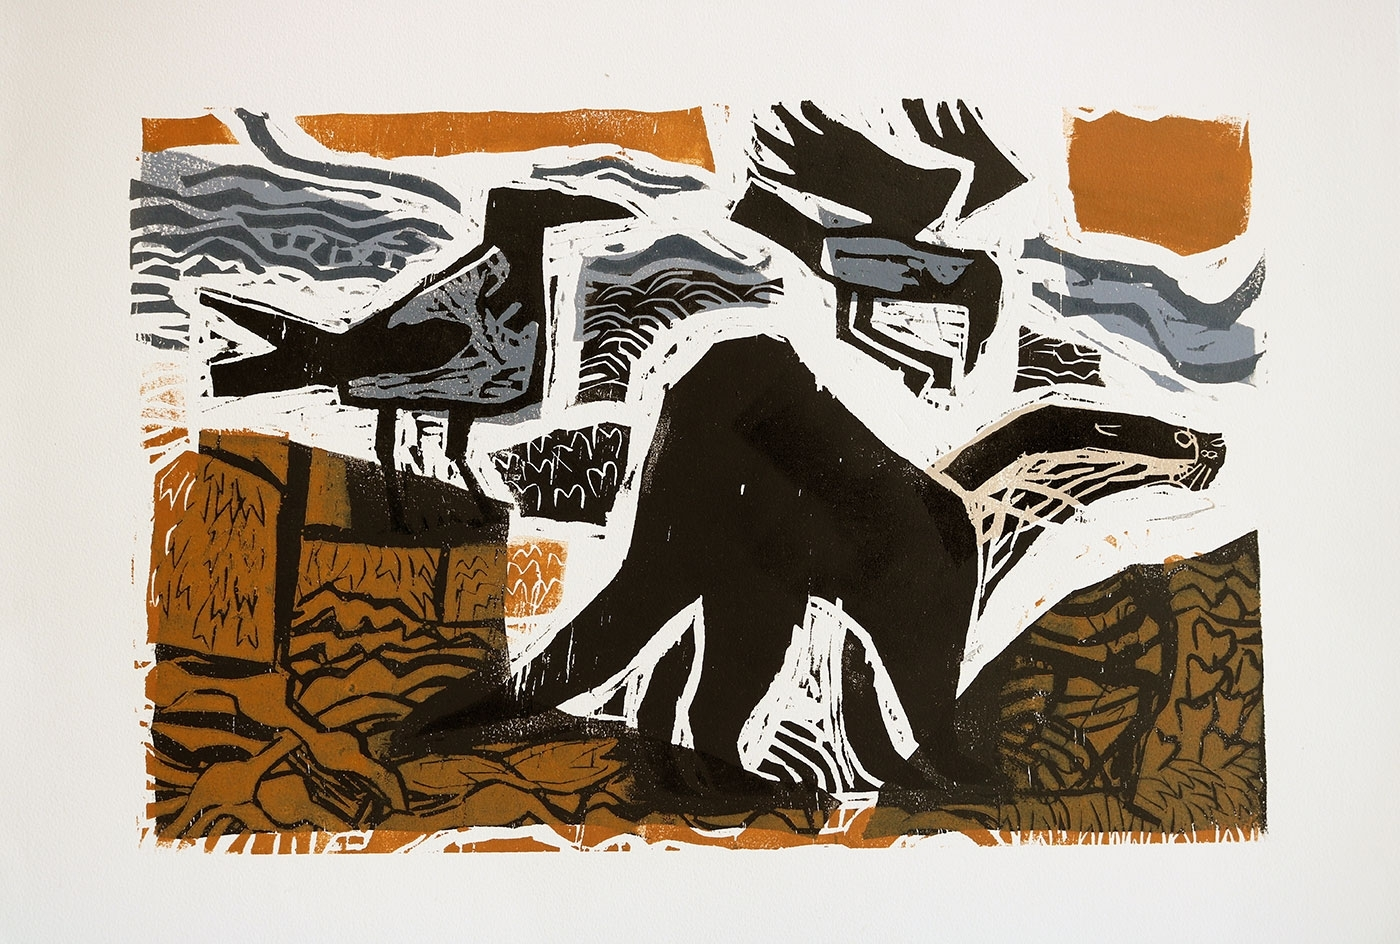 Otter and Hooded Crows, Relief print, 52 x 76 cm, Greg Poole